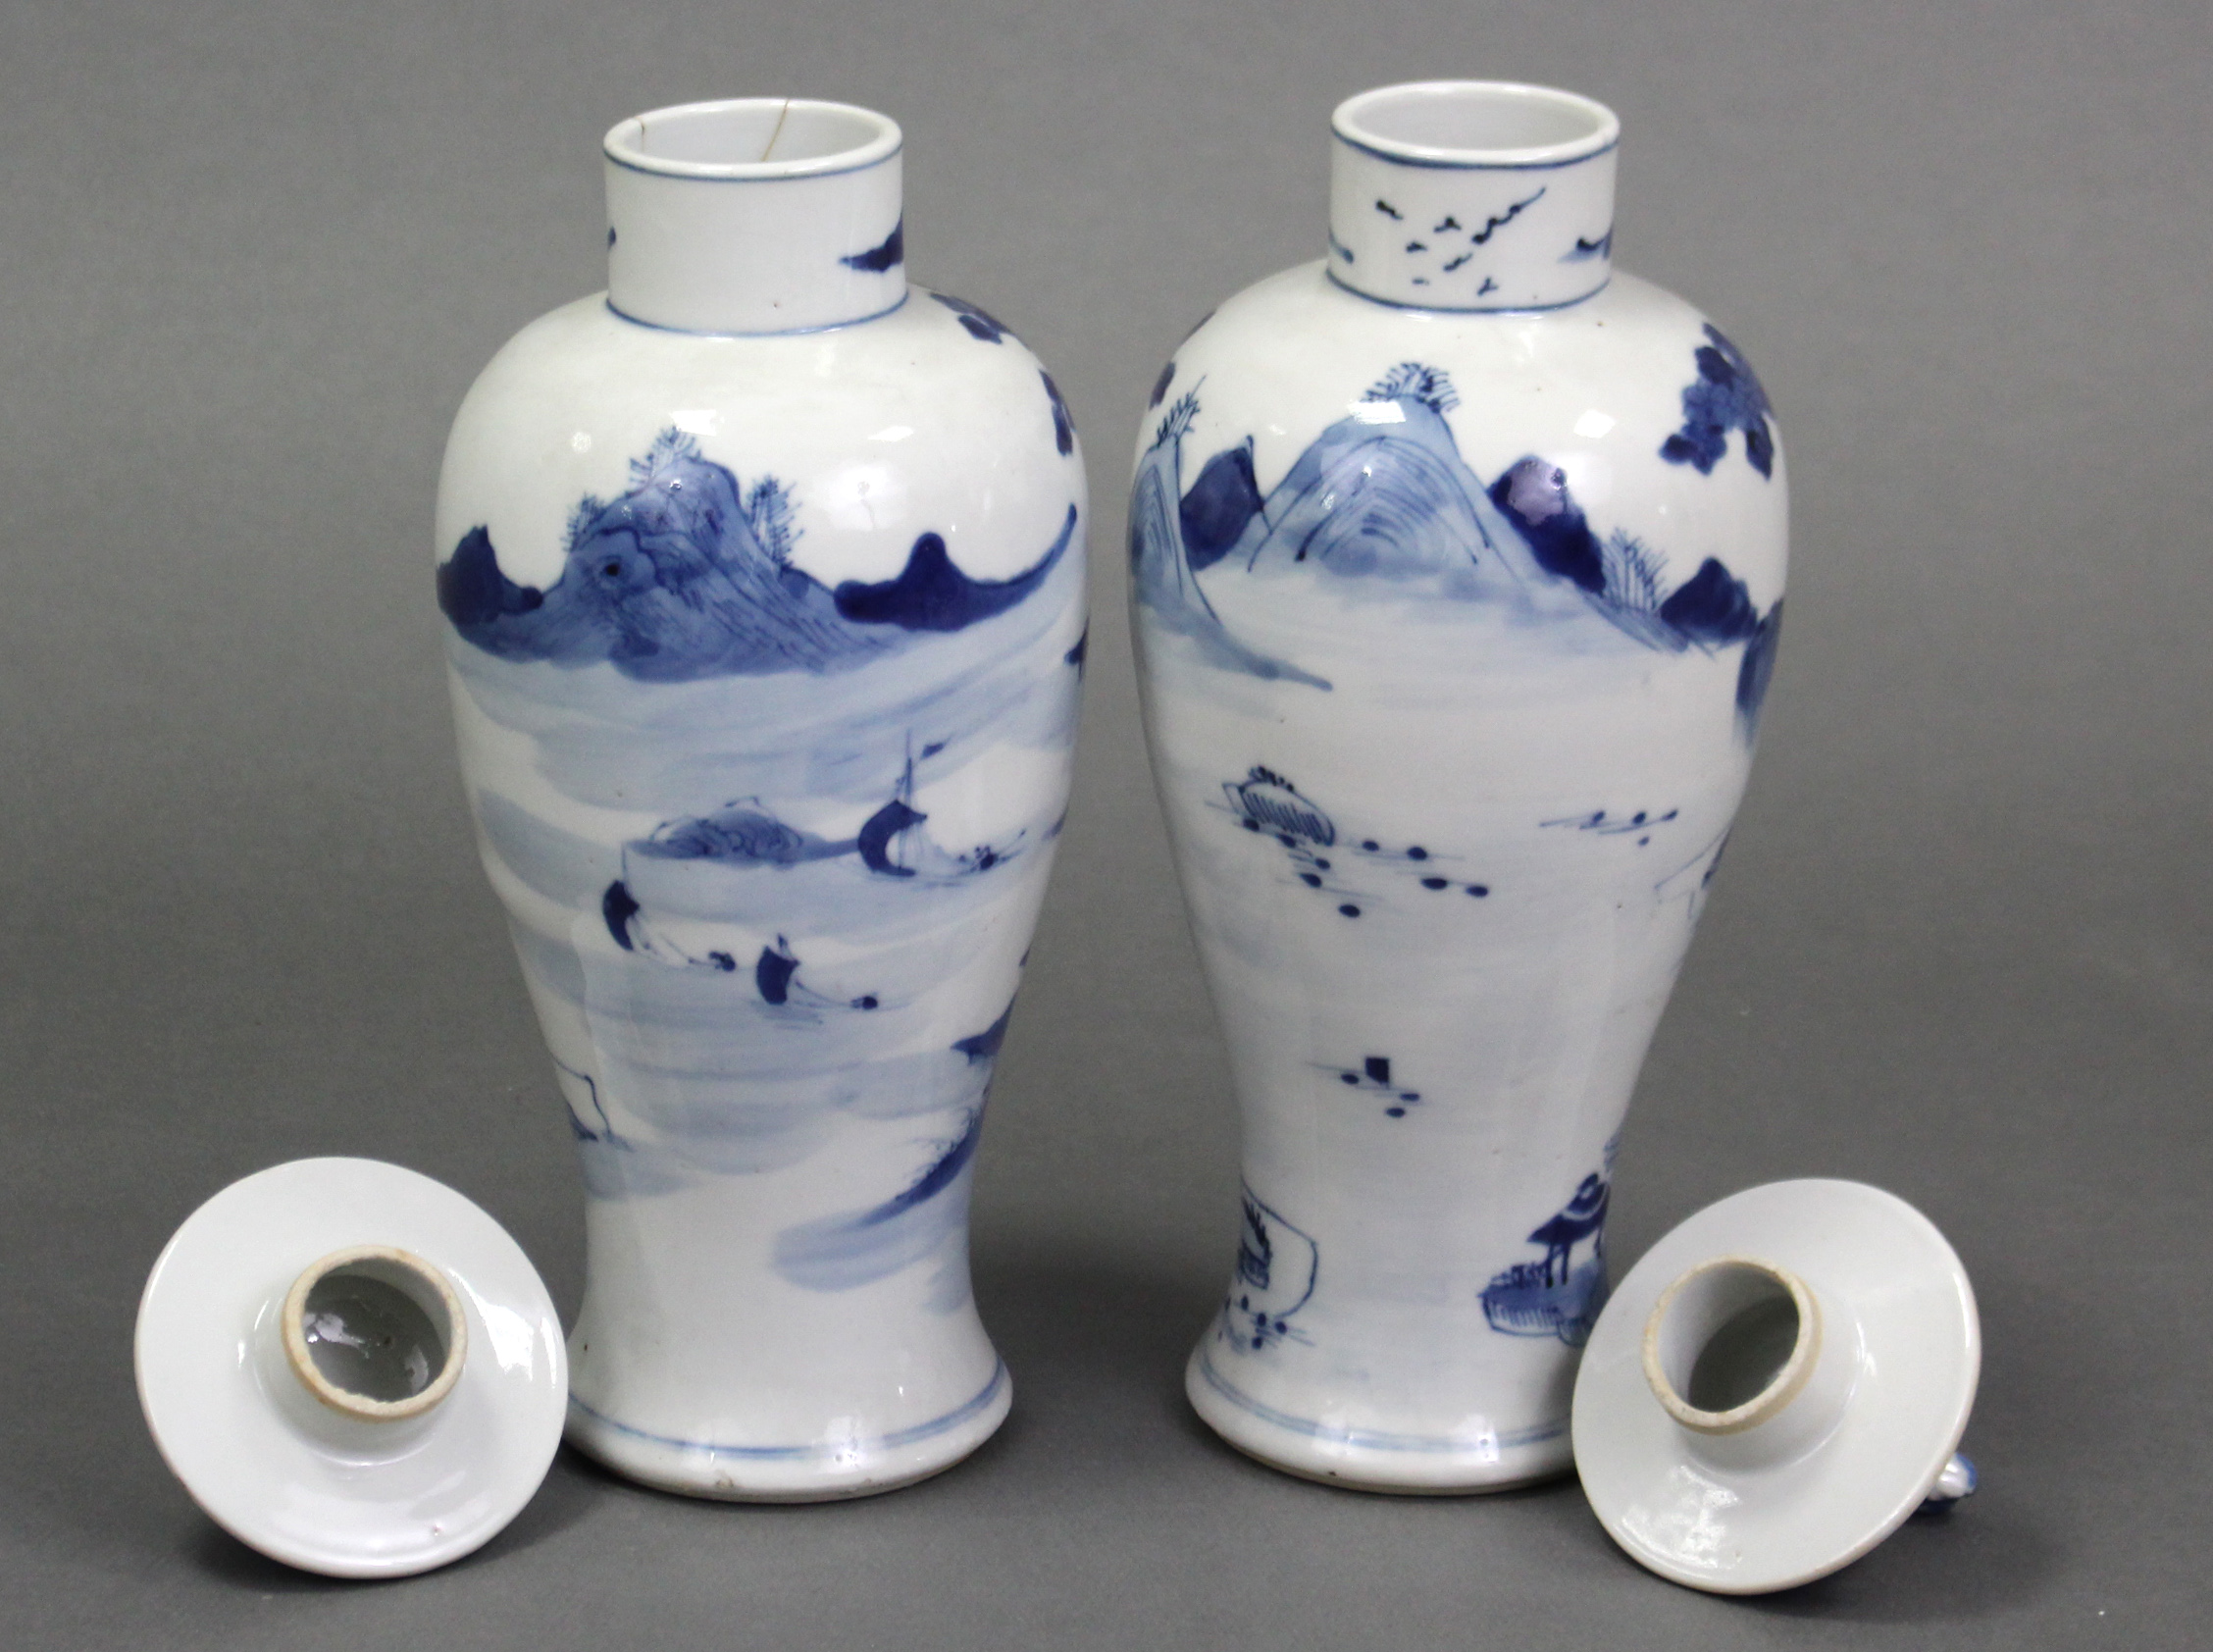 Lot 199 - A pair of Chinese blue & white porcelain slender baluster vases & covers, each with river